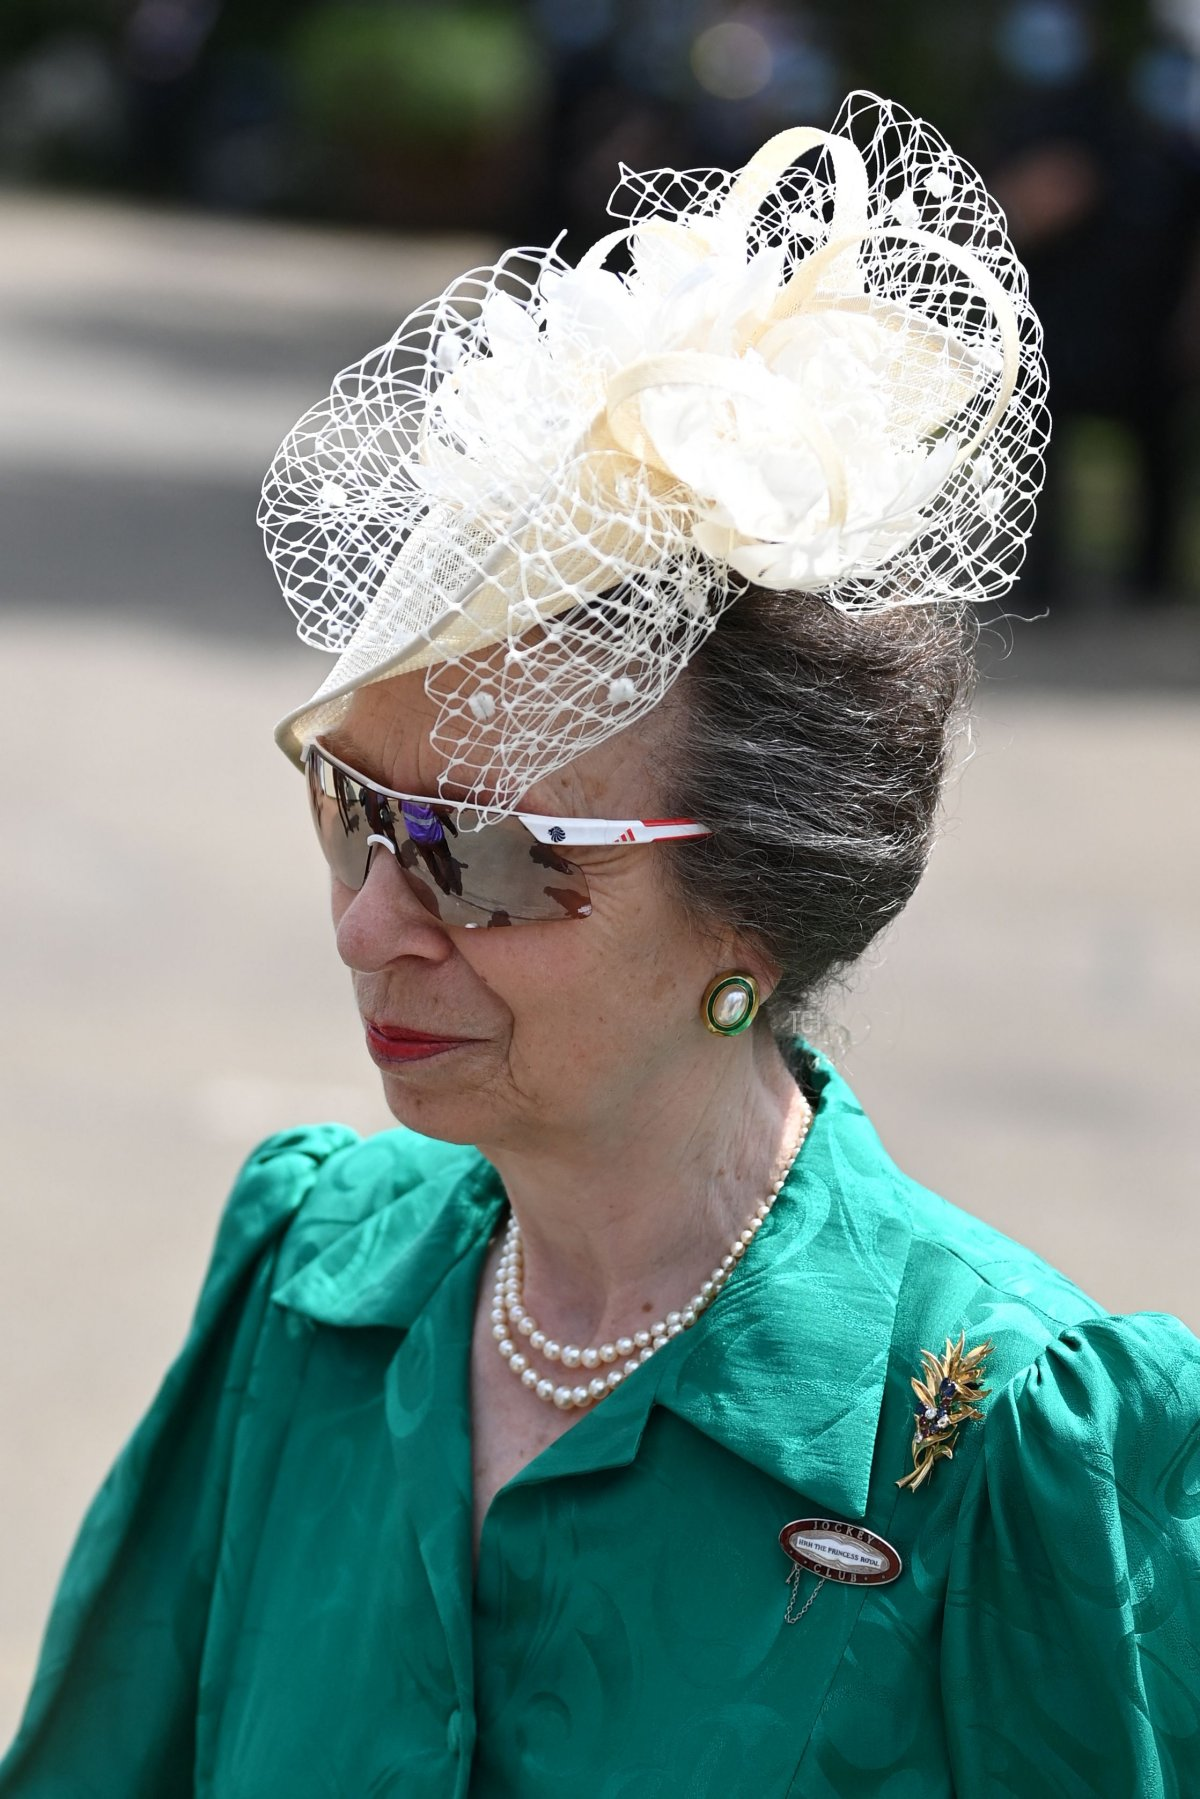 Britain's Princess Anne, Princess Royal arrives on the second day of the Royal Ascot horse racing meet, in Ascot, west of London on June 16, 2021